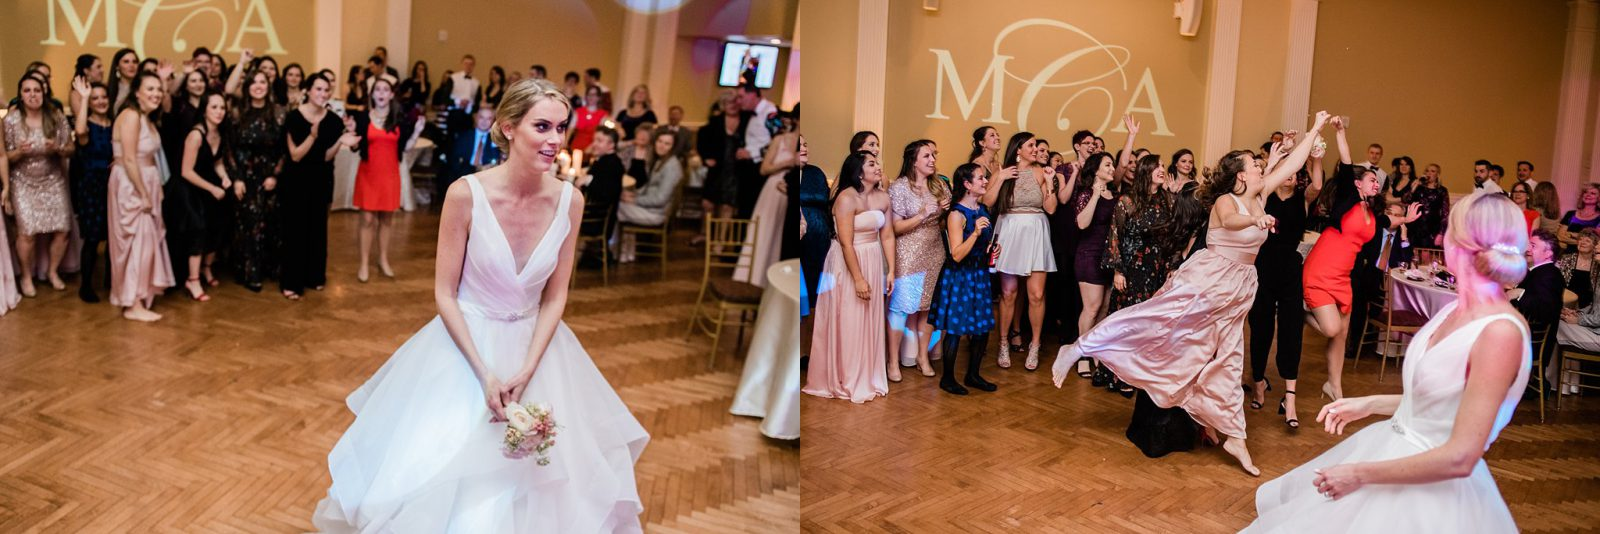 THE-ONESTO-CANTON-WEDDING-PHOTOGRAPHER_00871